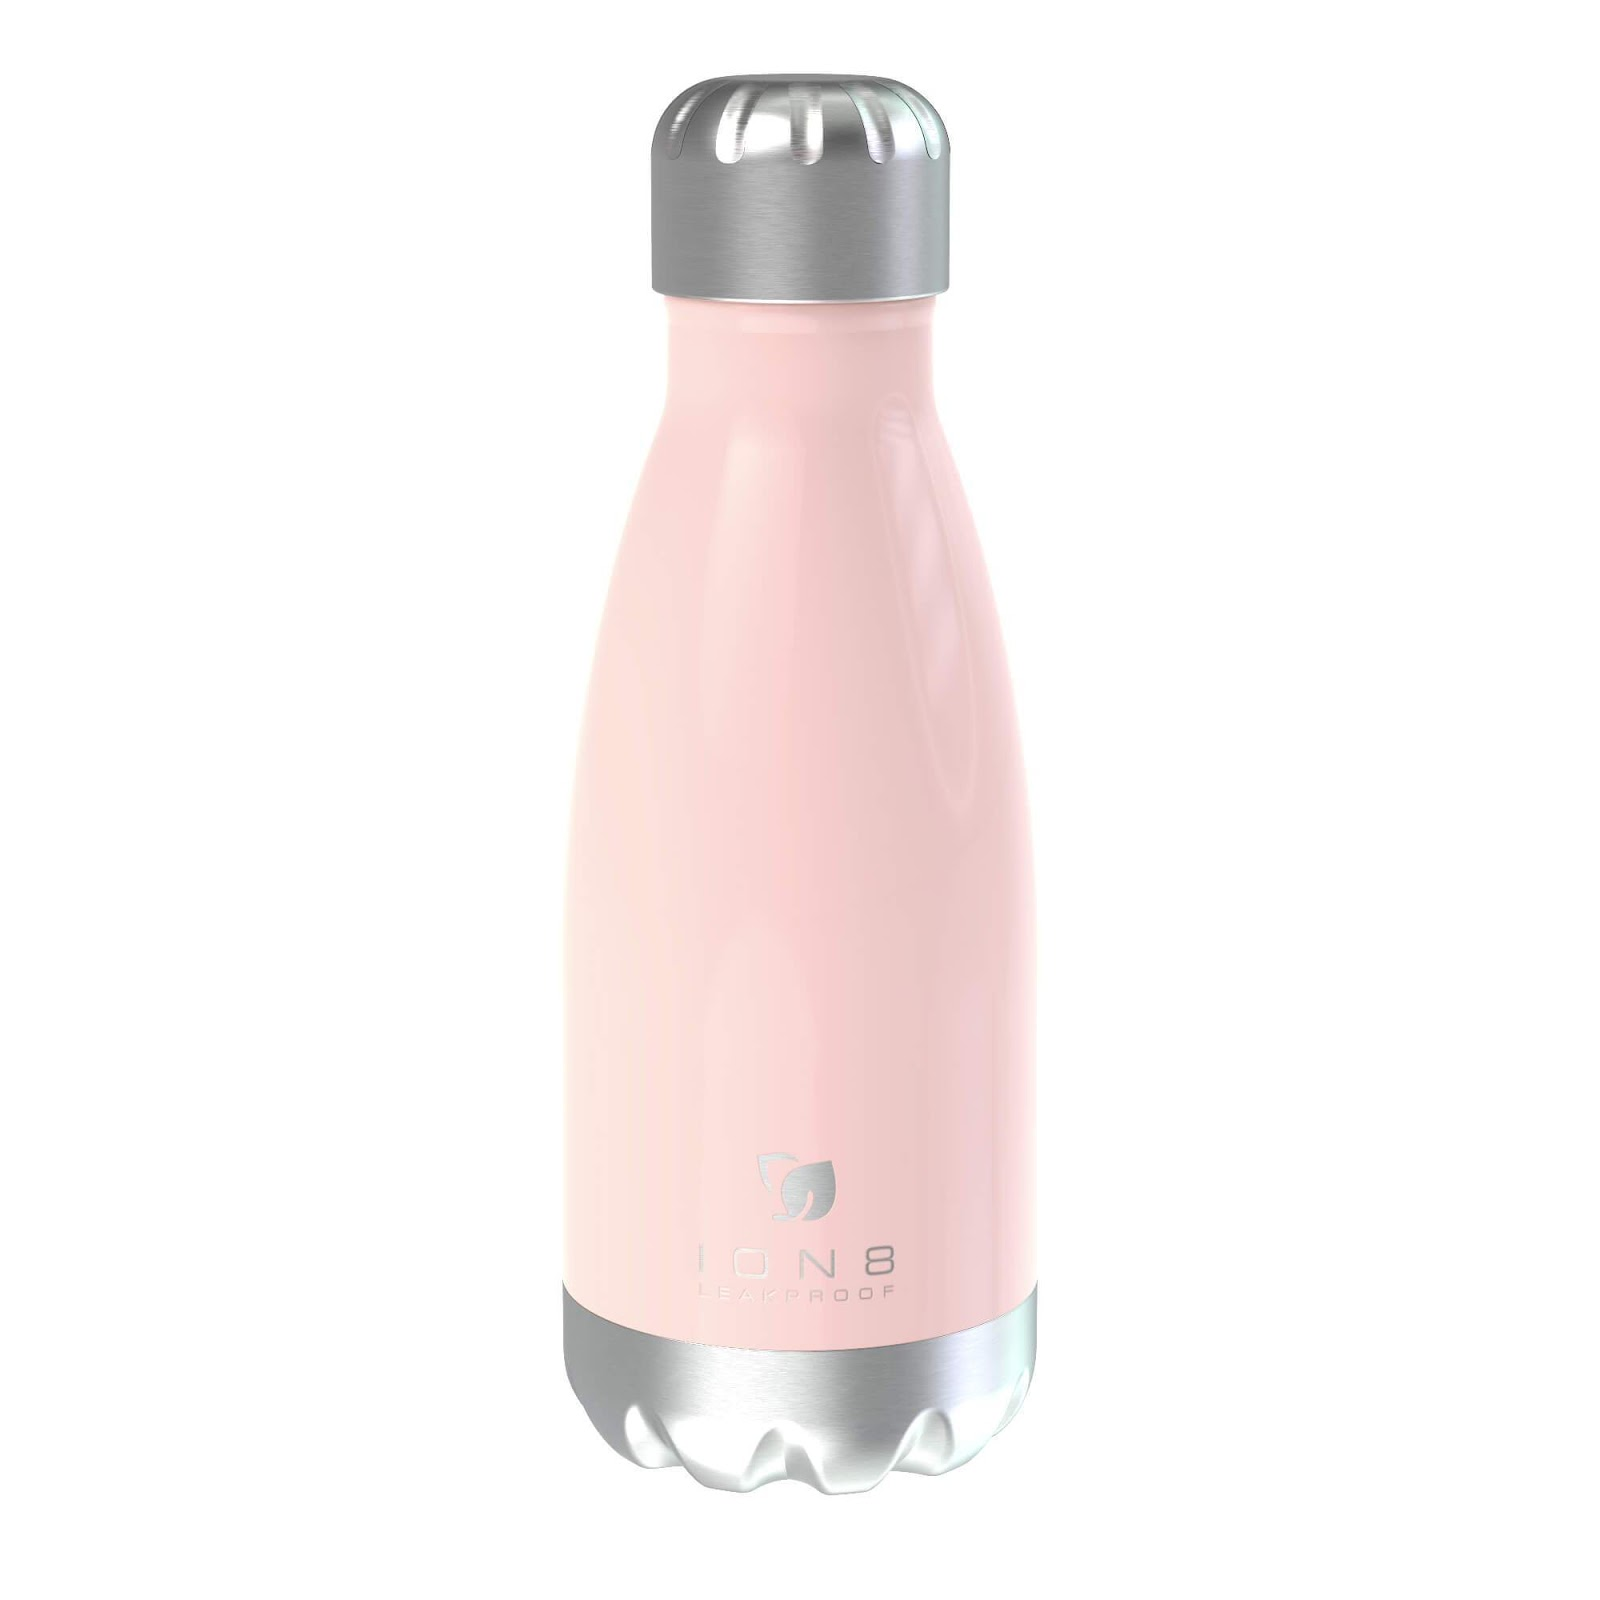 Ion8 Leak Proof Flask in Rose Quartz Pink